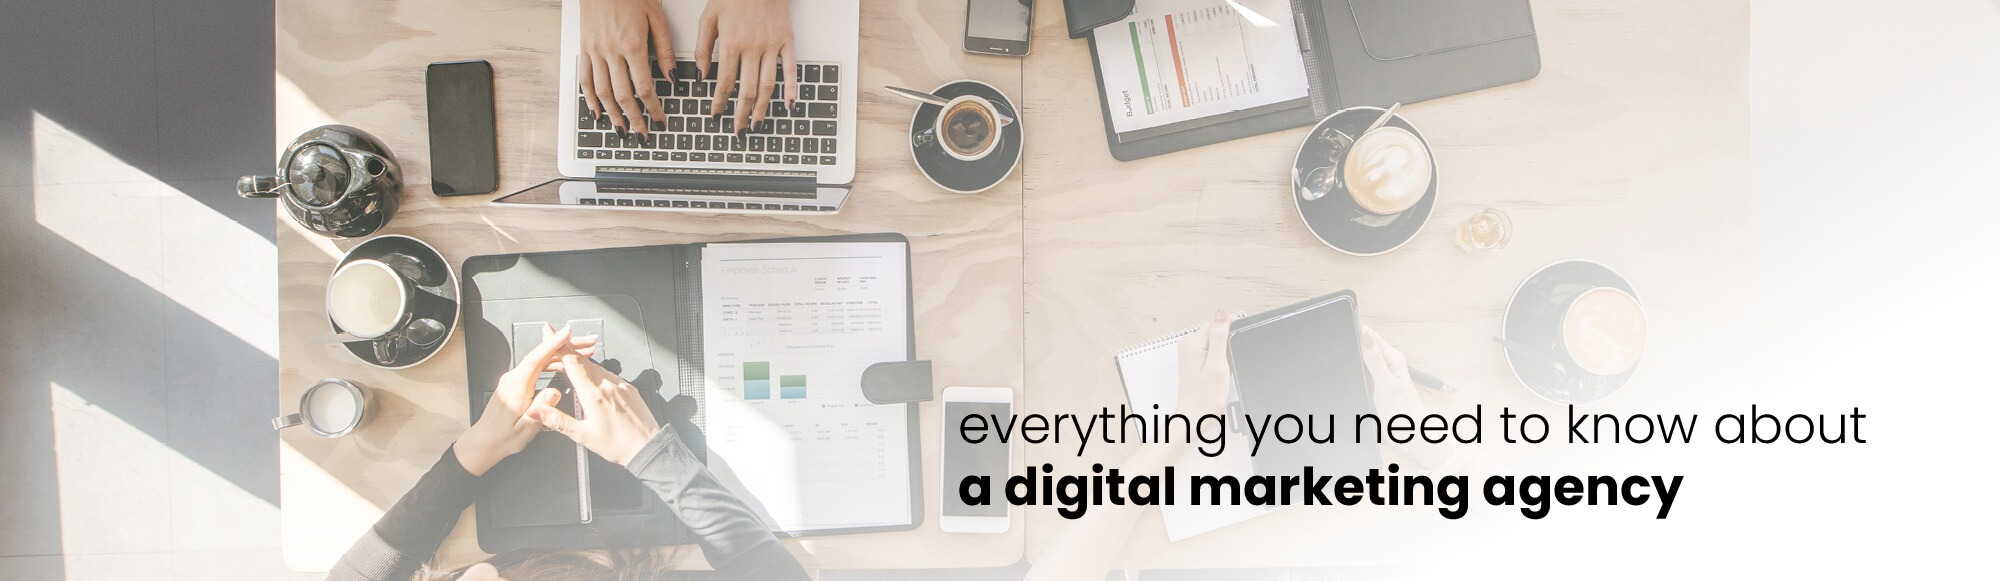 Digital Marketing Agencies - What Do You Need to Know?